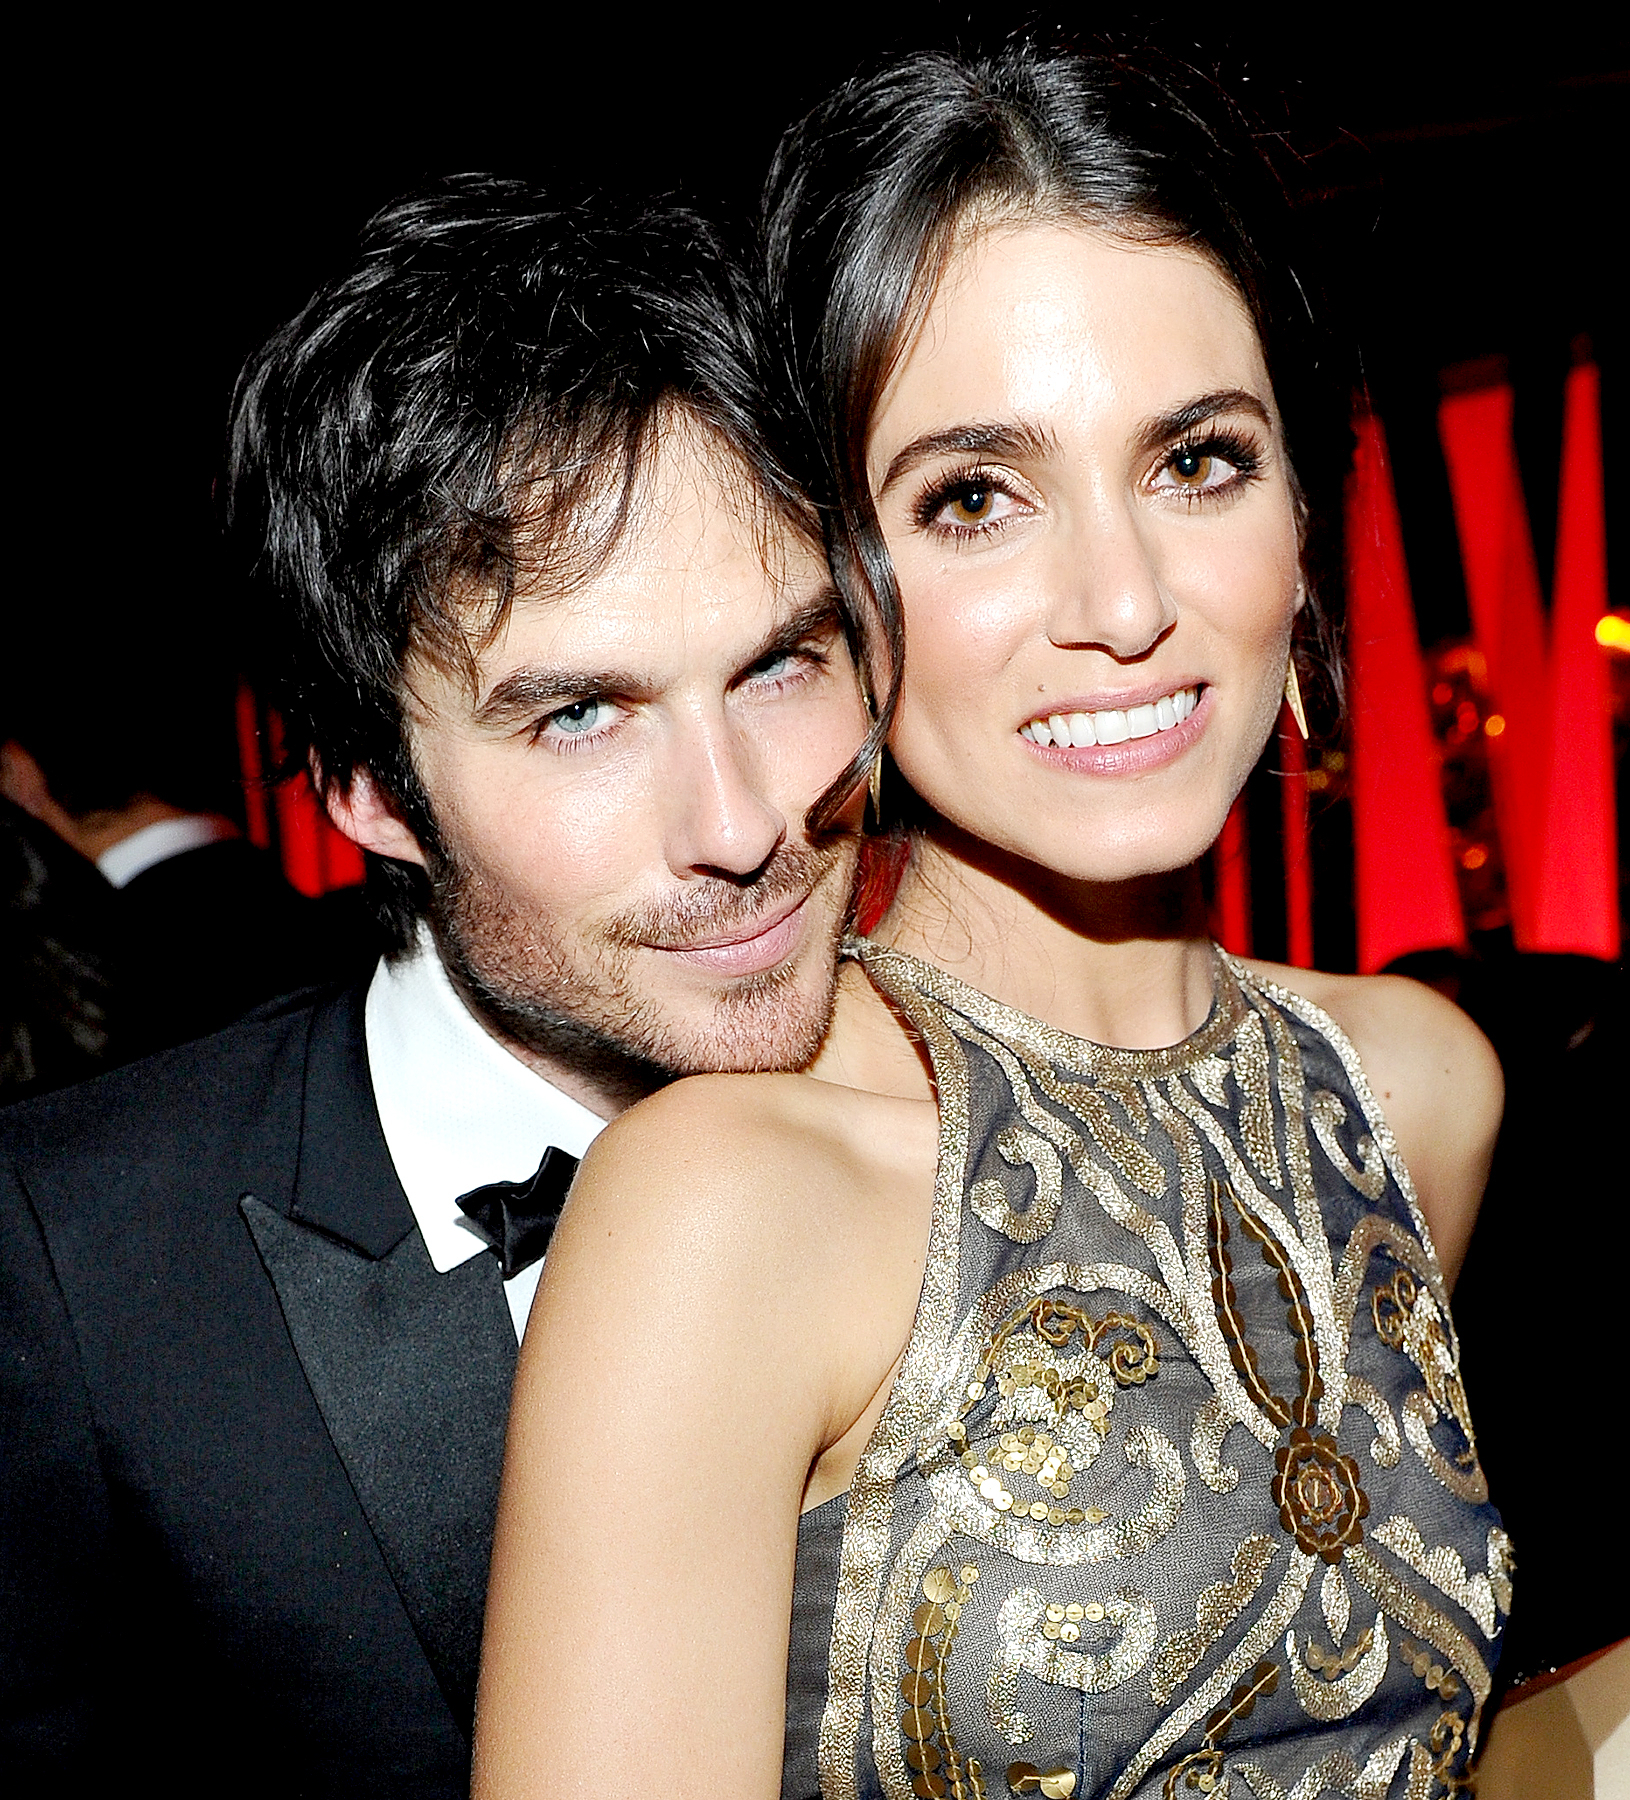 Ian Somerhalder and Nikki Reed attend The 2016 InStyle and Warner Bros. 73rd annual Golden Globe Awards Post-Party at The Beverly Hilton Hotel on January 10, 2016 in Beverly Hills, California.